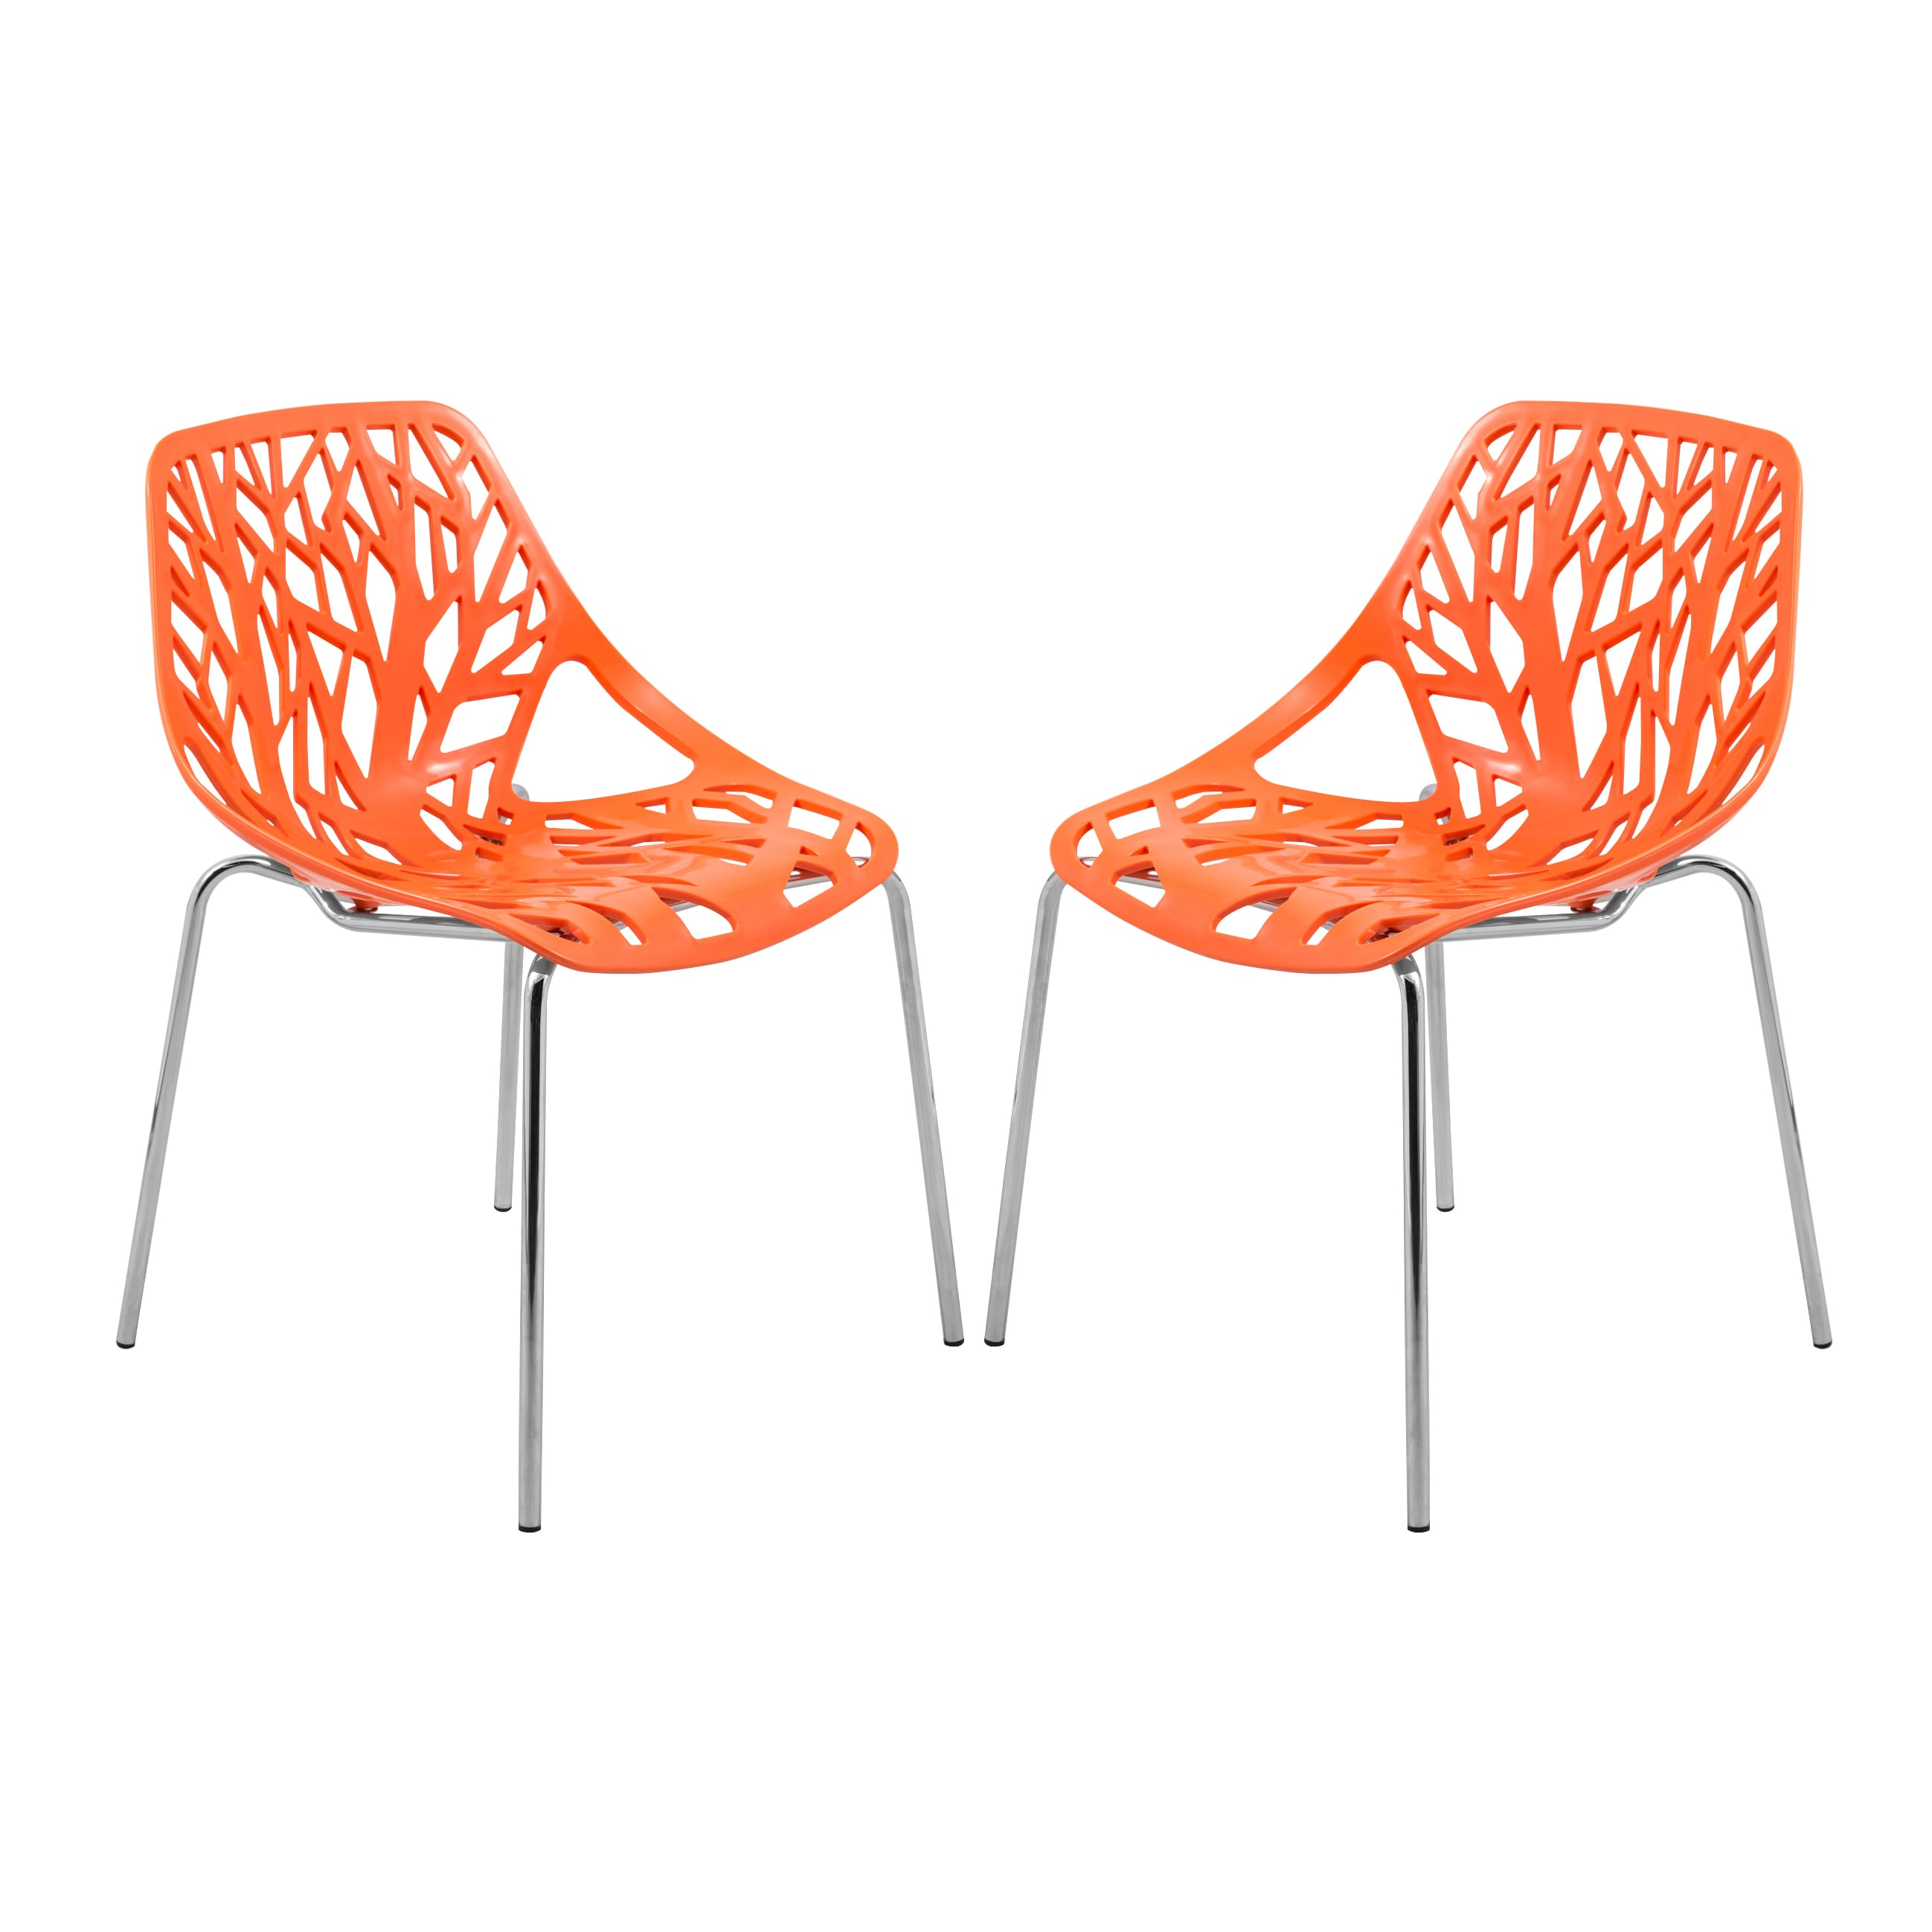 Attrayant Shop LeisureMod Asbury Modern Orange Dining Chair With Chrome Legs Set Of 2    Free Shipping Today   Overstock.com   9274215